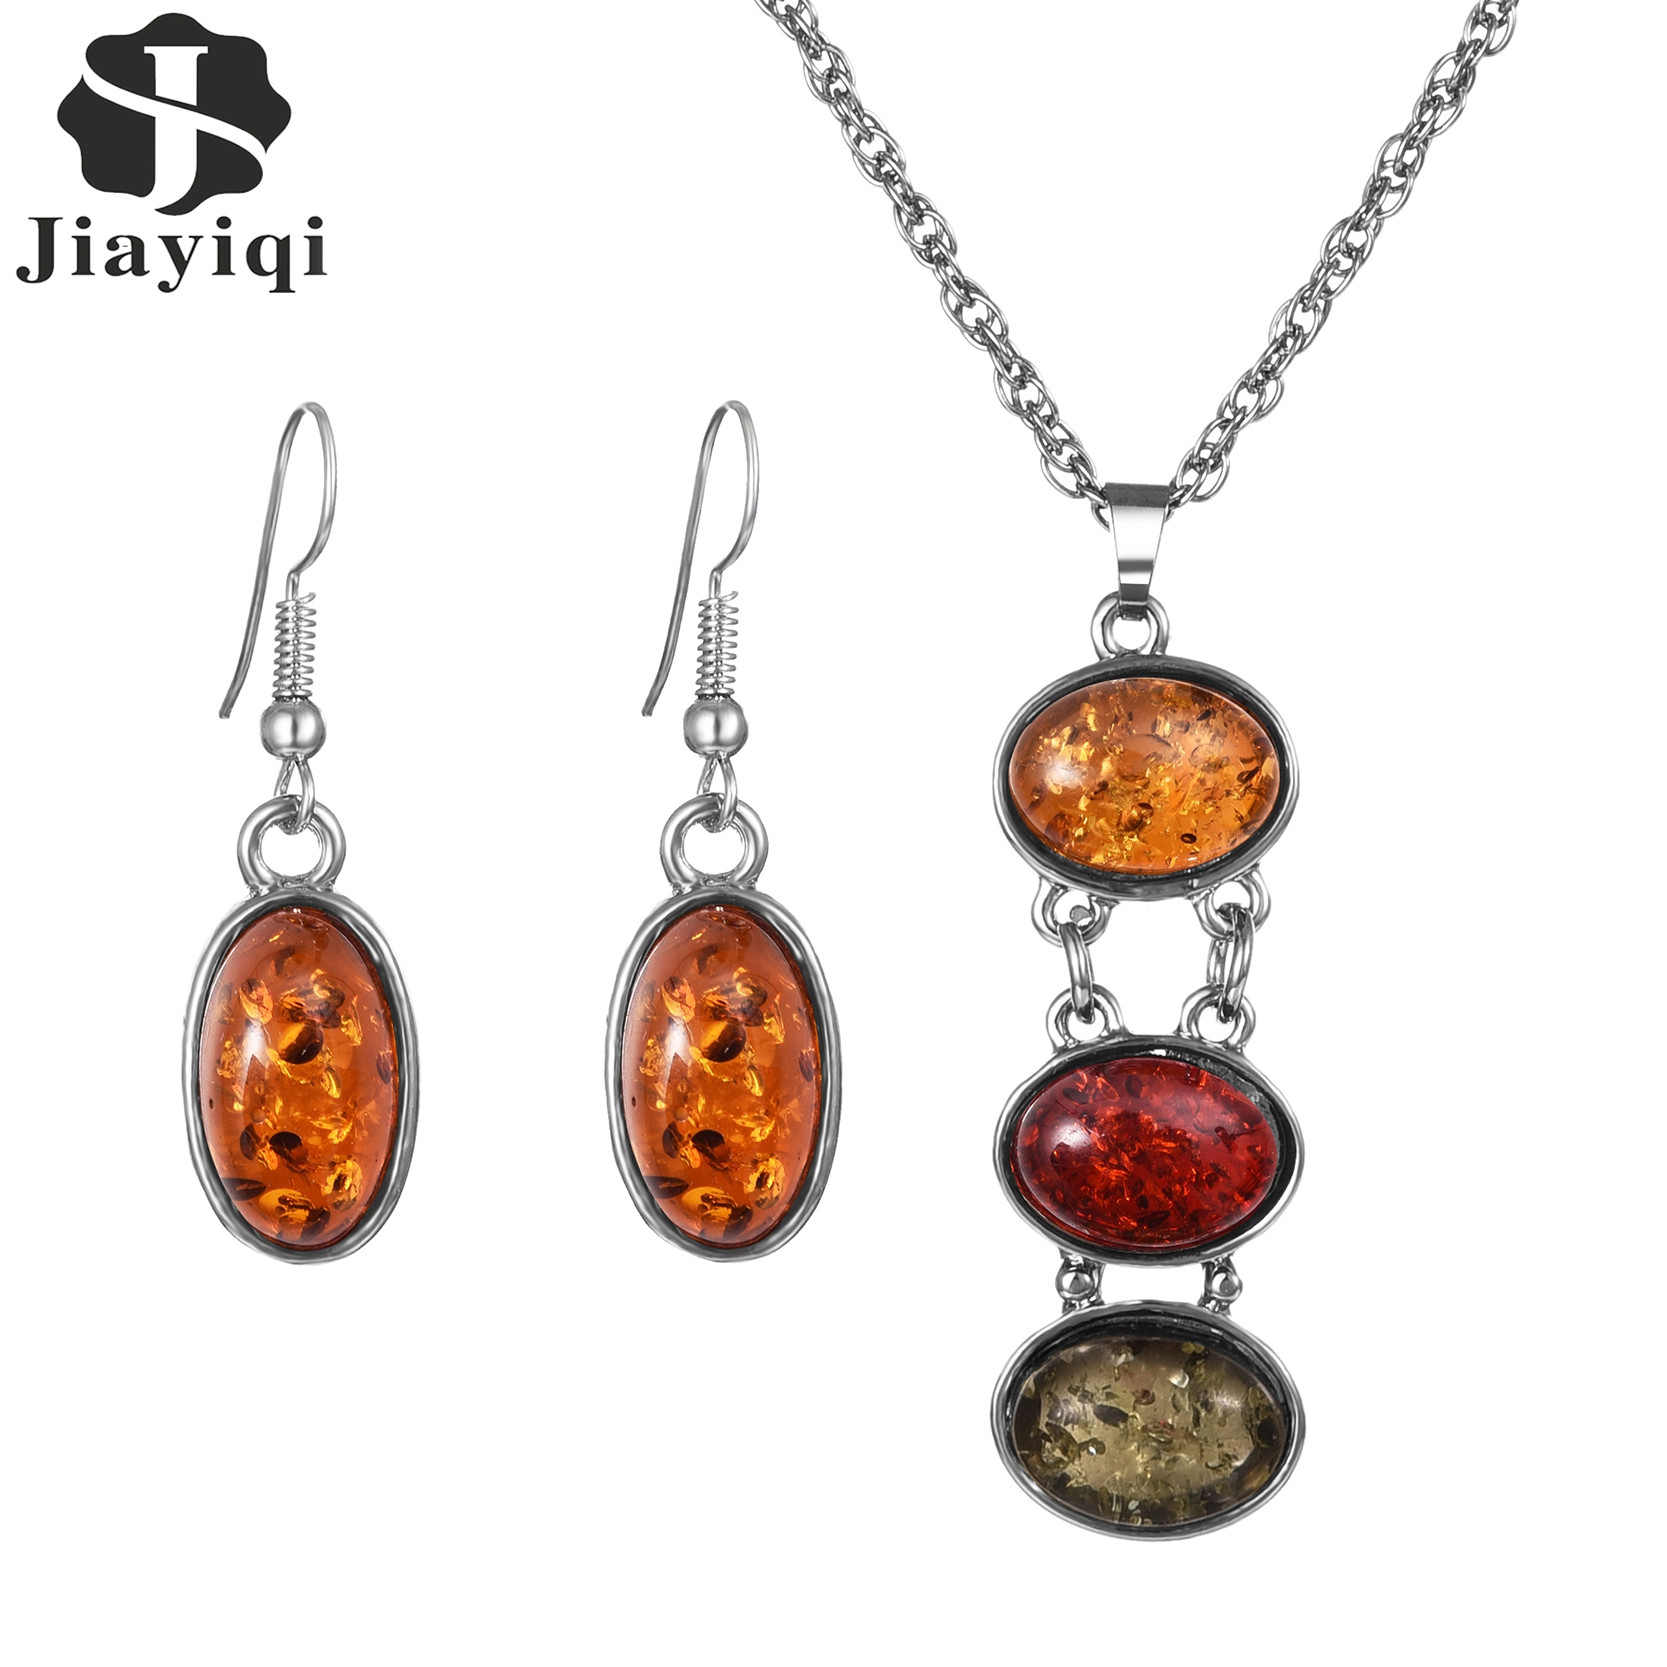 New 2017 Turkey Vintage Jewelry Earrings And Necklace For Women Tricolor African Stone Jewelry Sets Party Birthday Gift